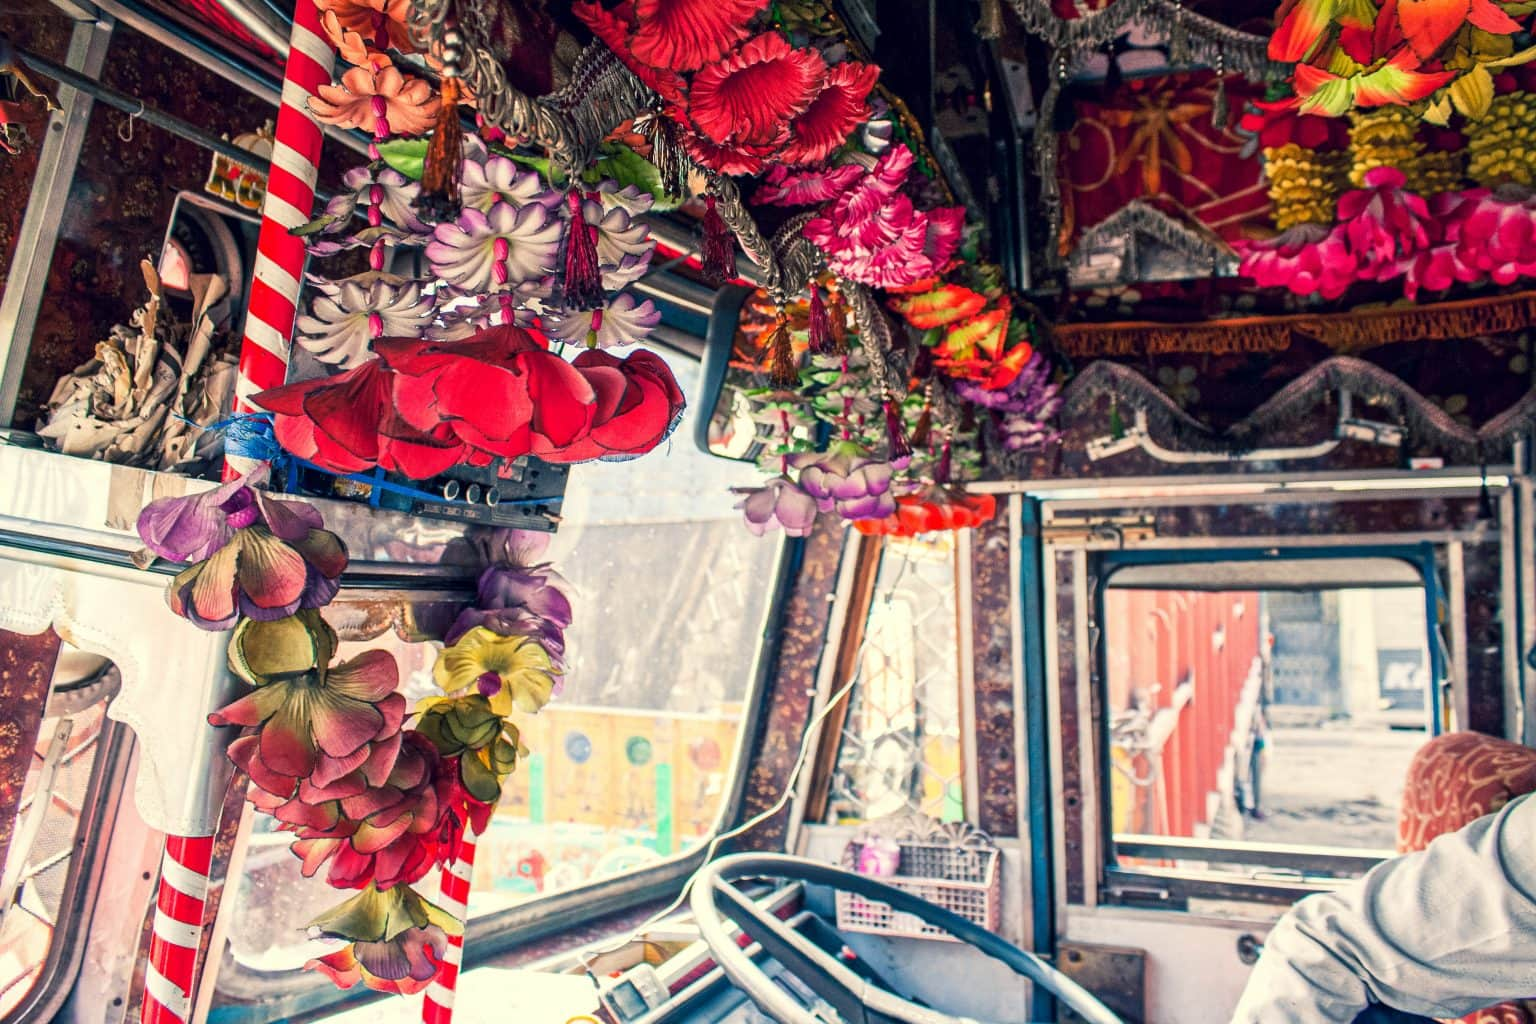 Image: The inside of a truck cab decorated with flowers